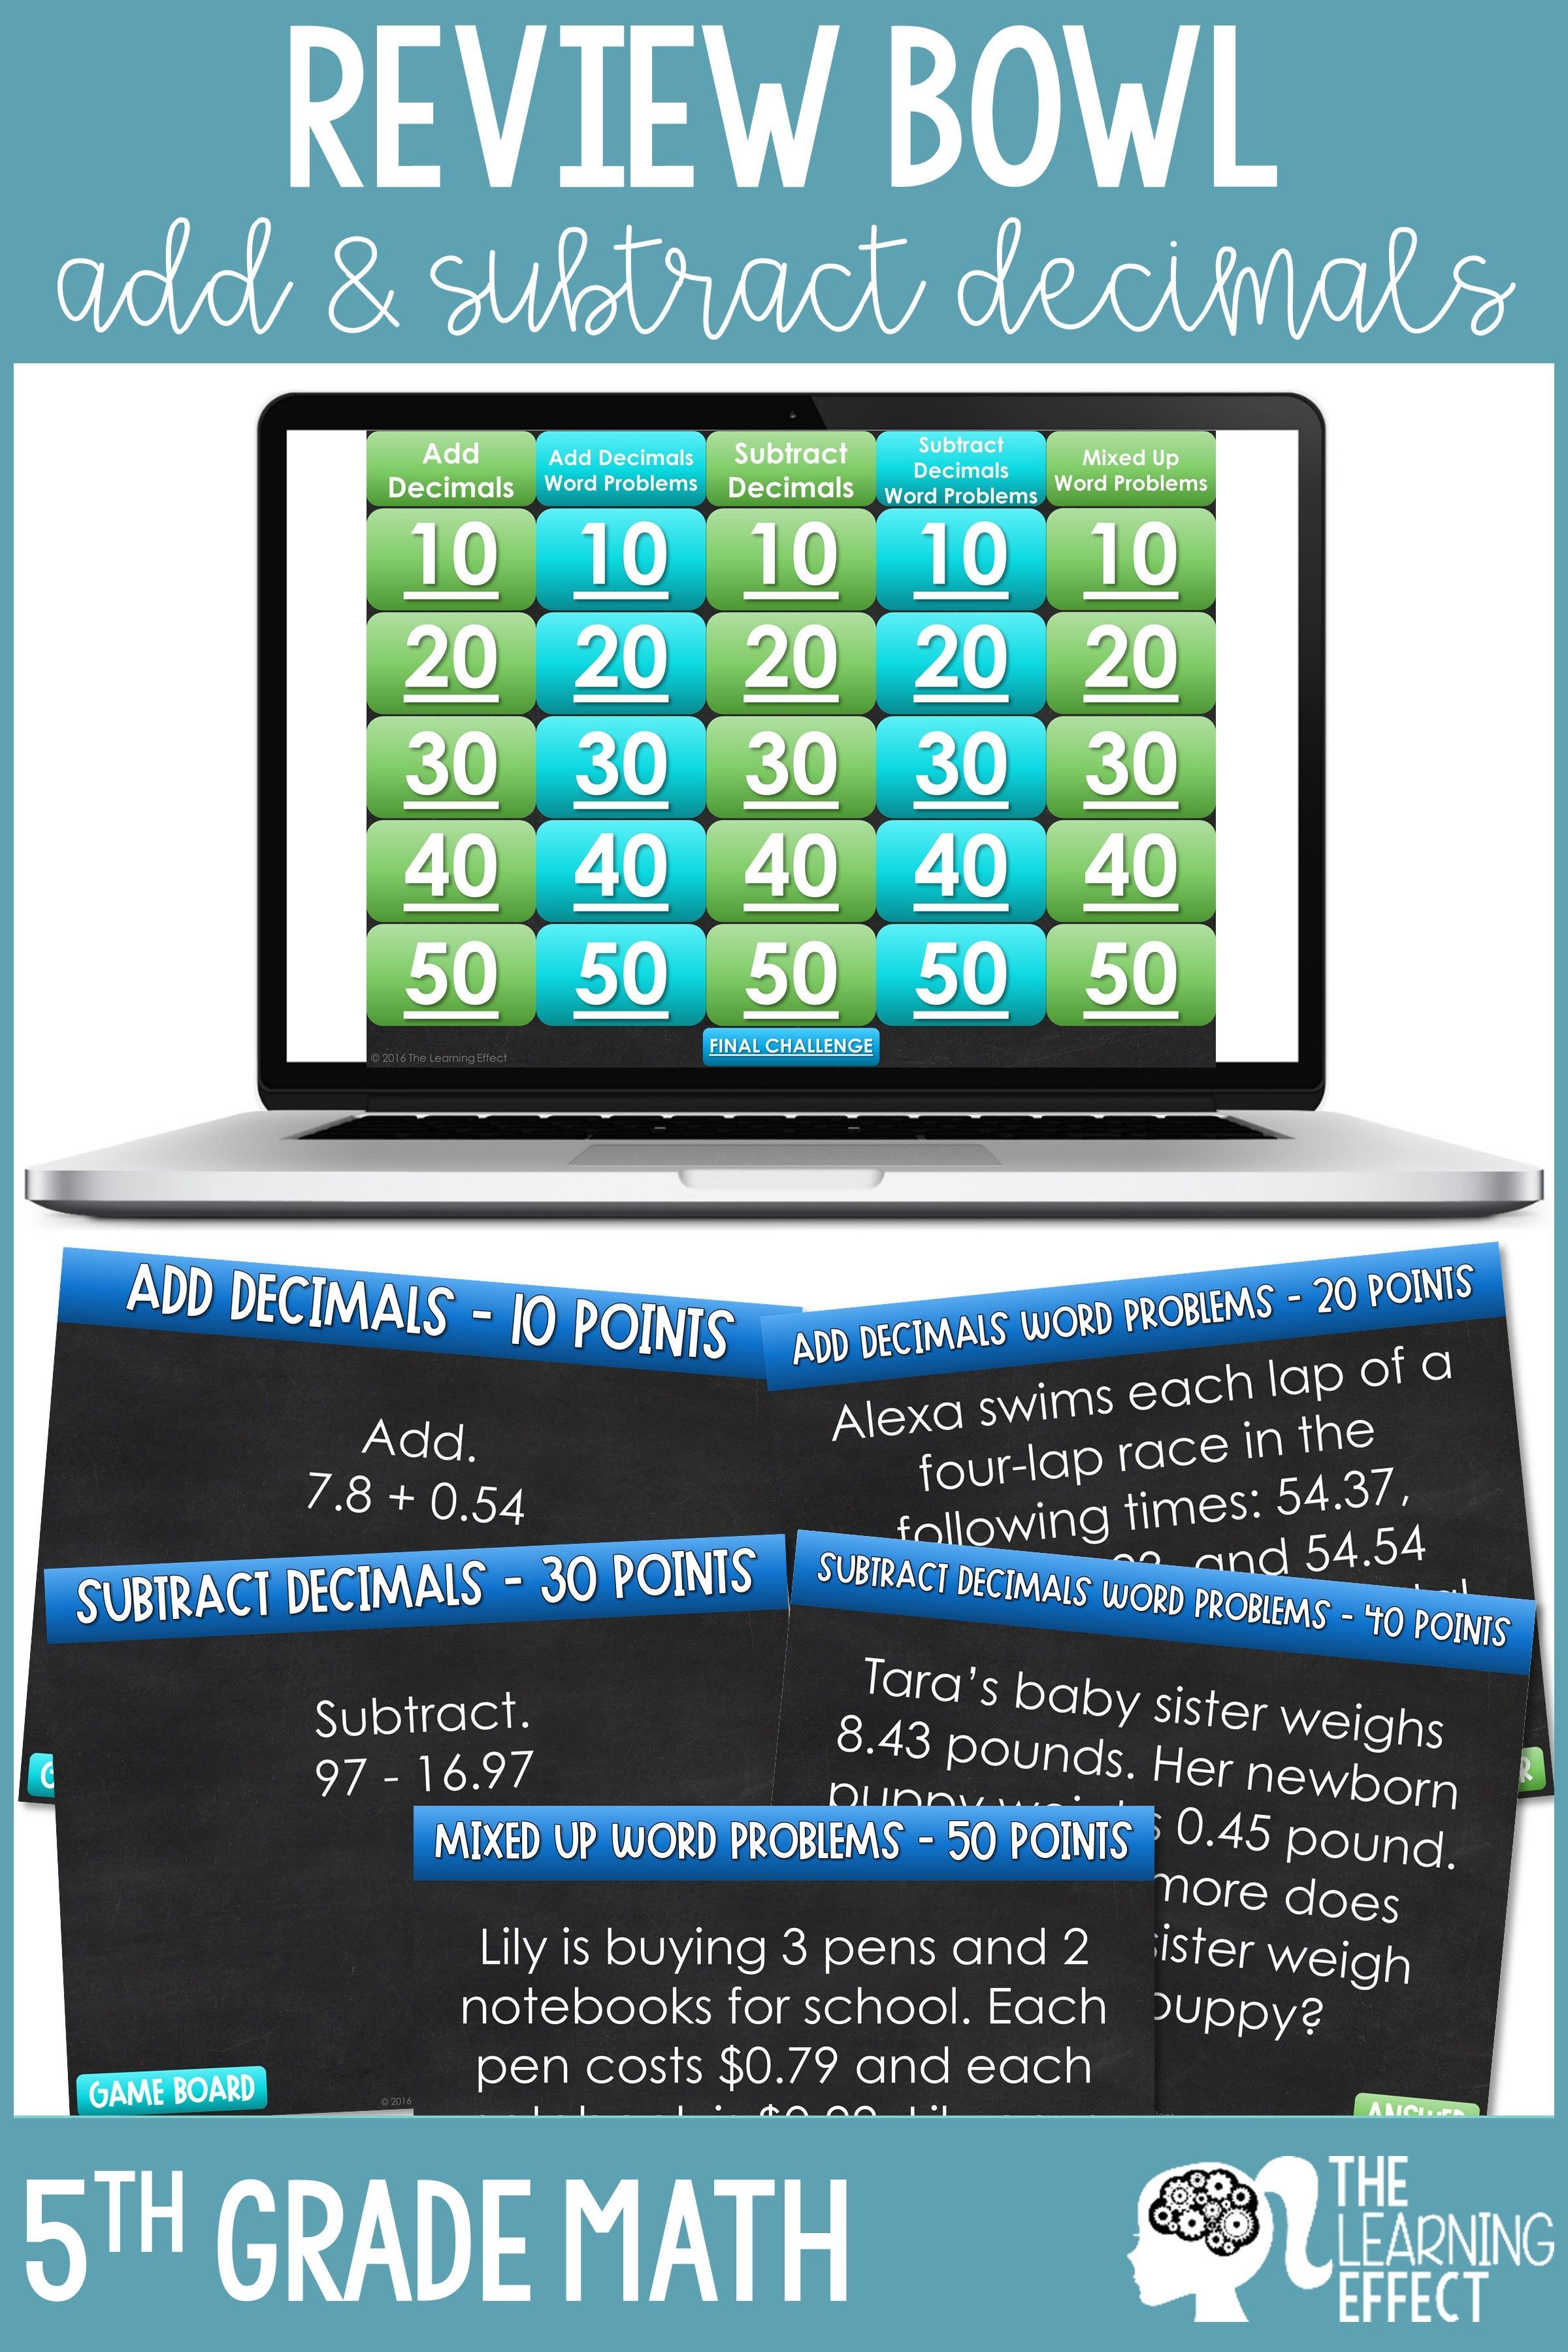 Add And Subtract Decimals Game Show